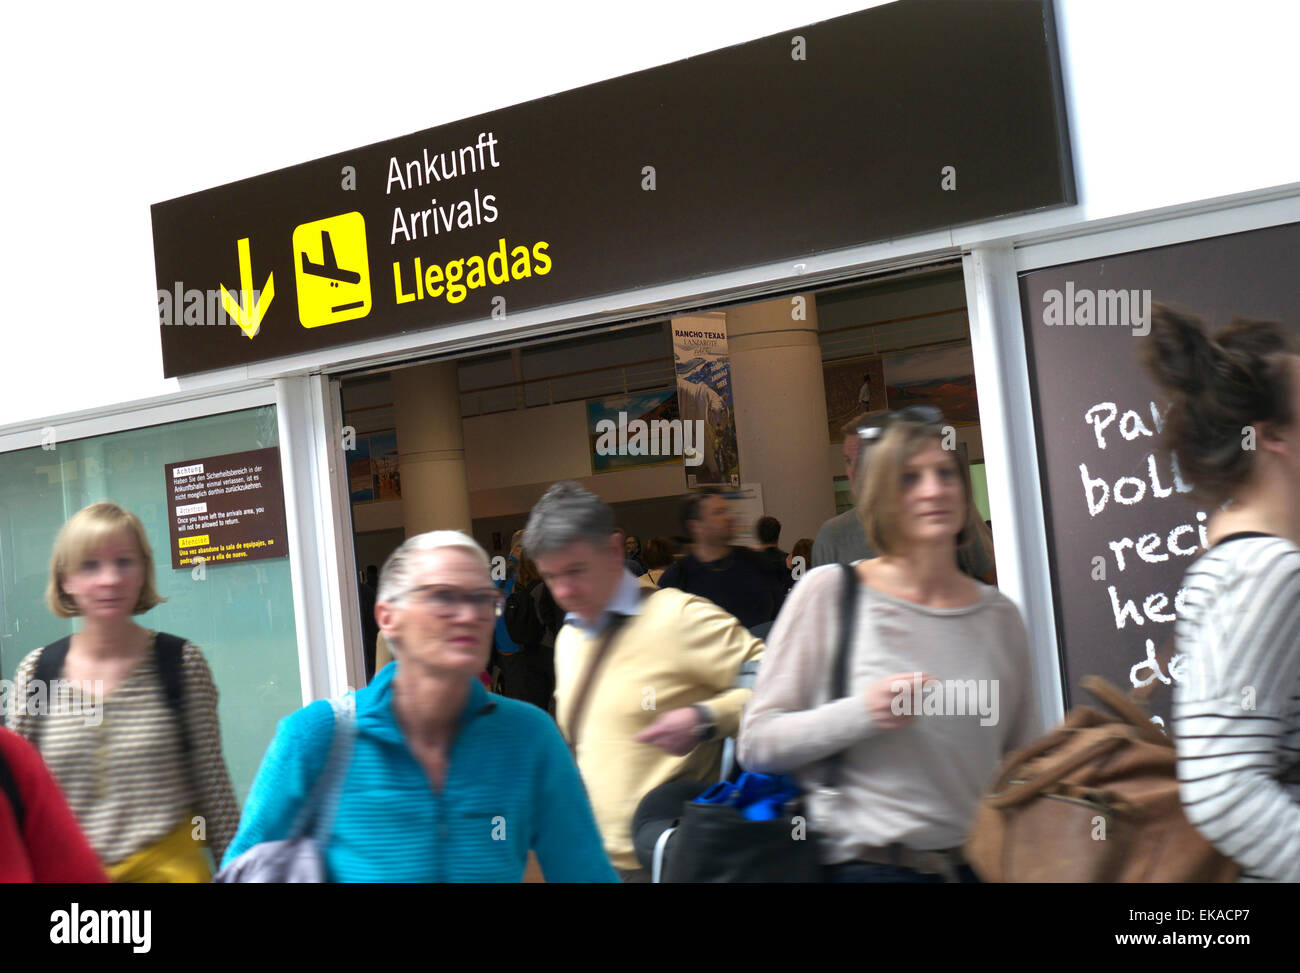 Airline passengers arriving at busy Lanzarote airport arrivals hall Canary Islands Spain - Stock Image